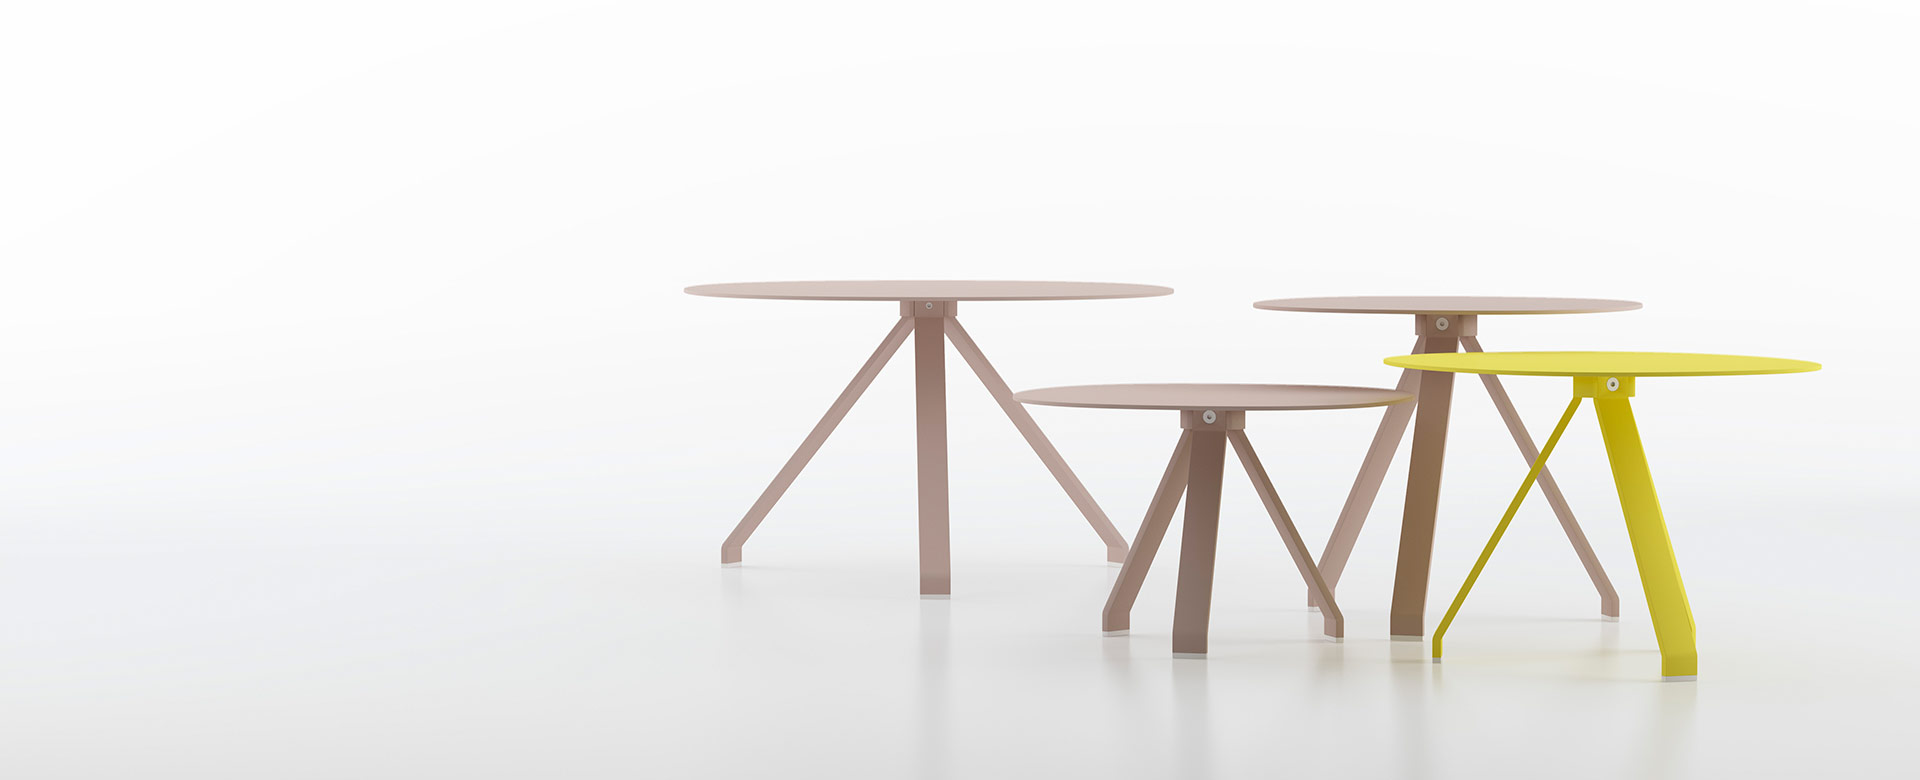 Celes Outdoor Tables